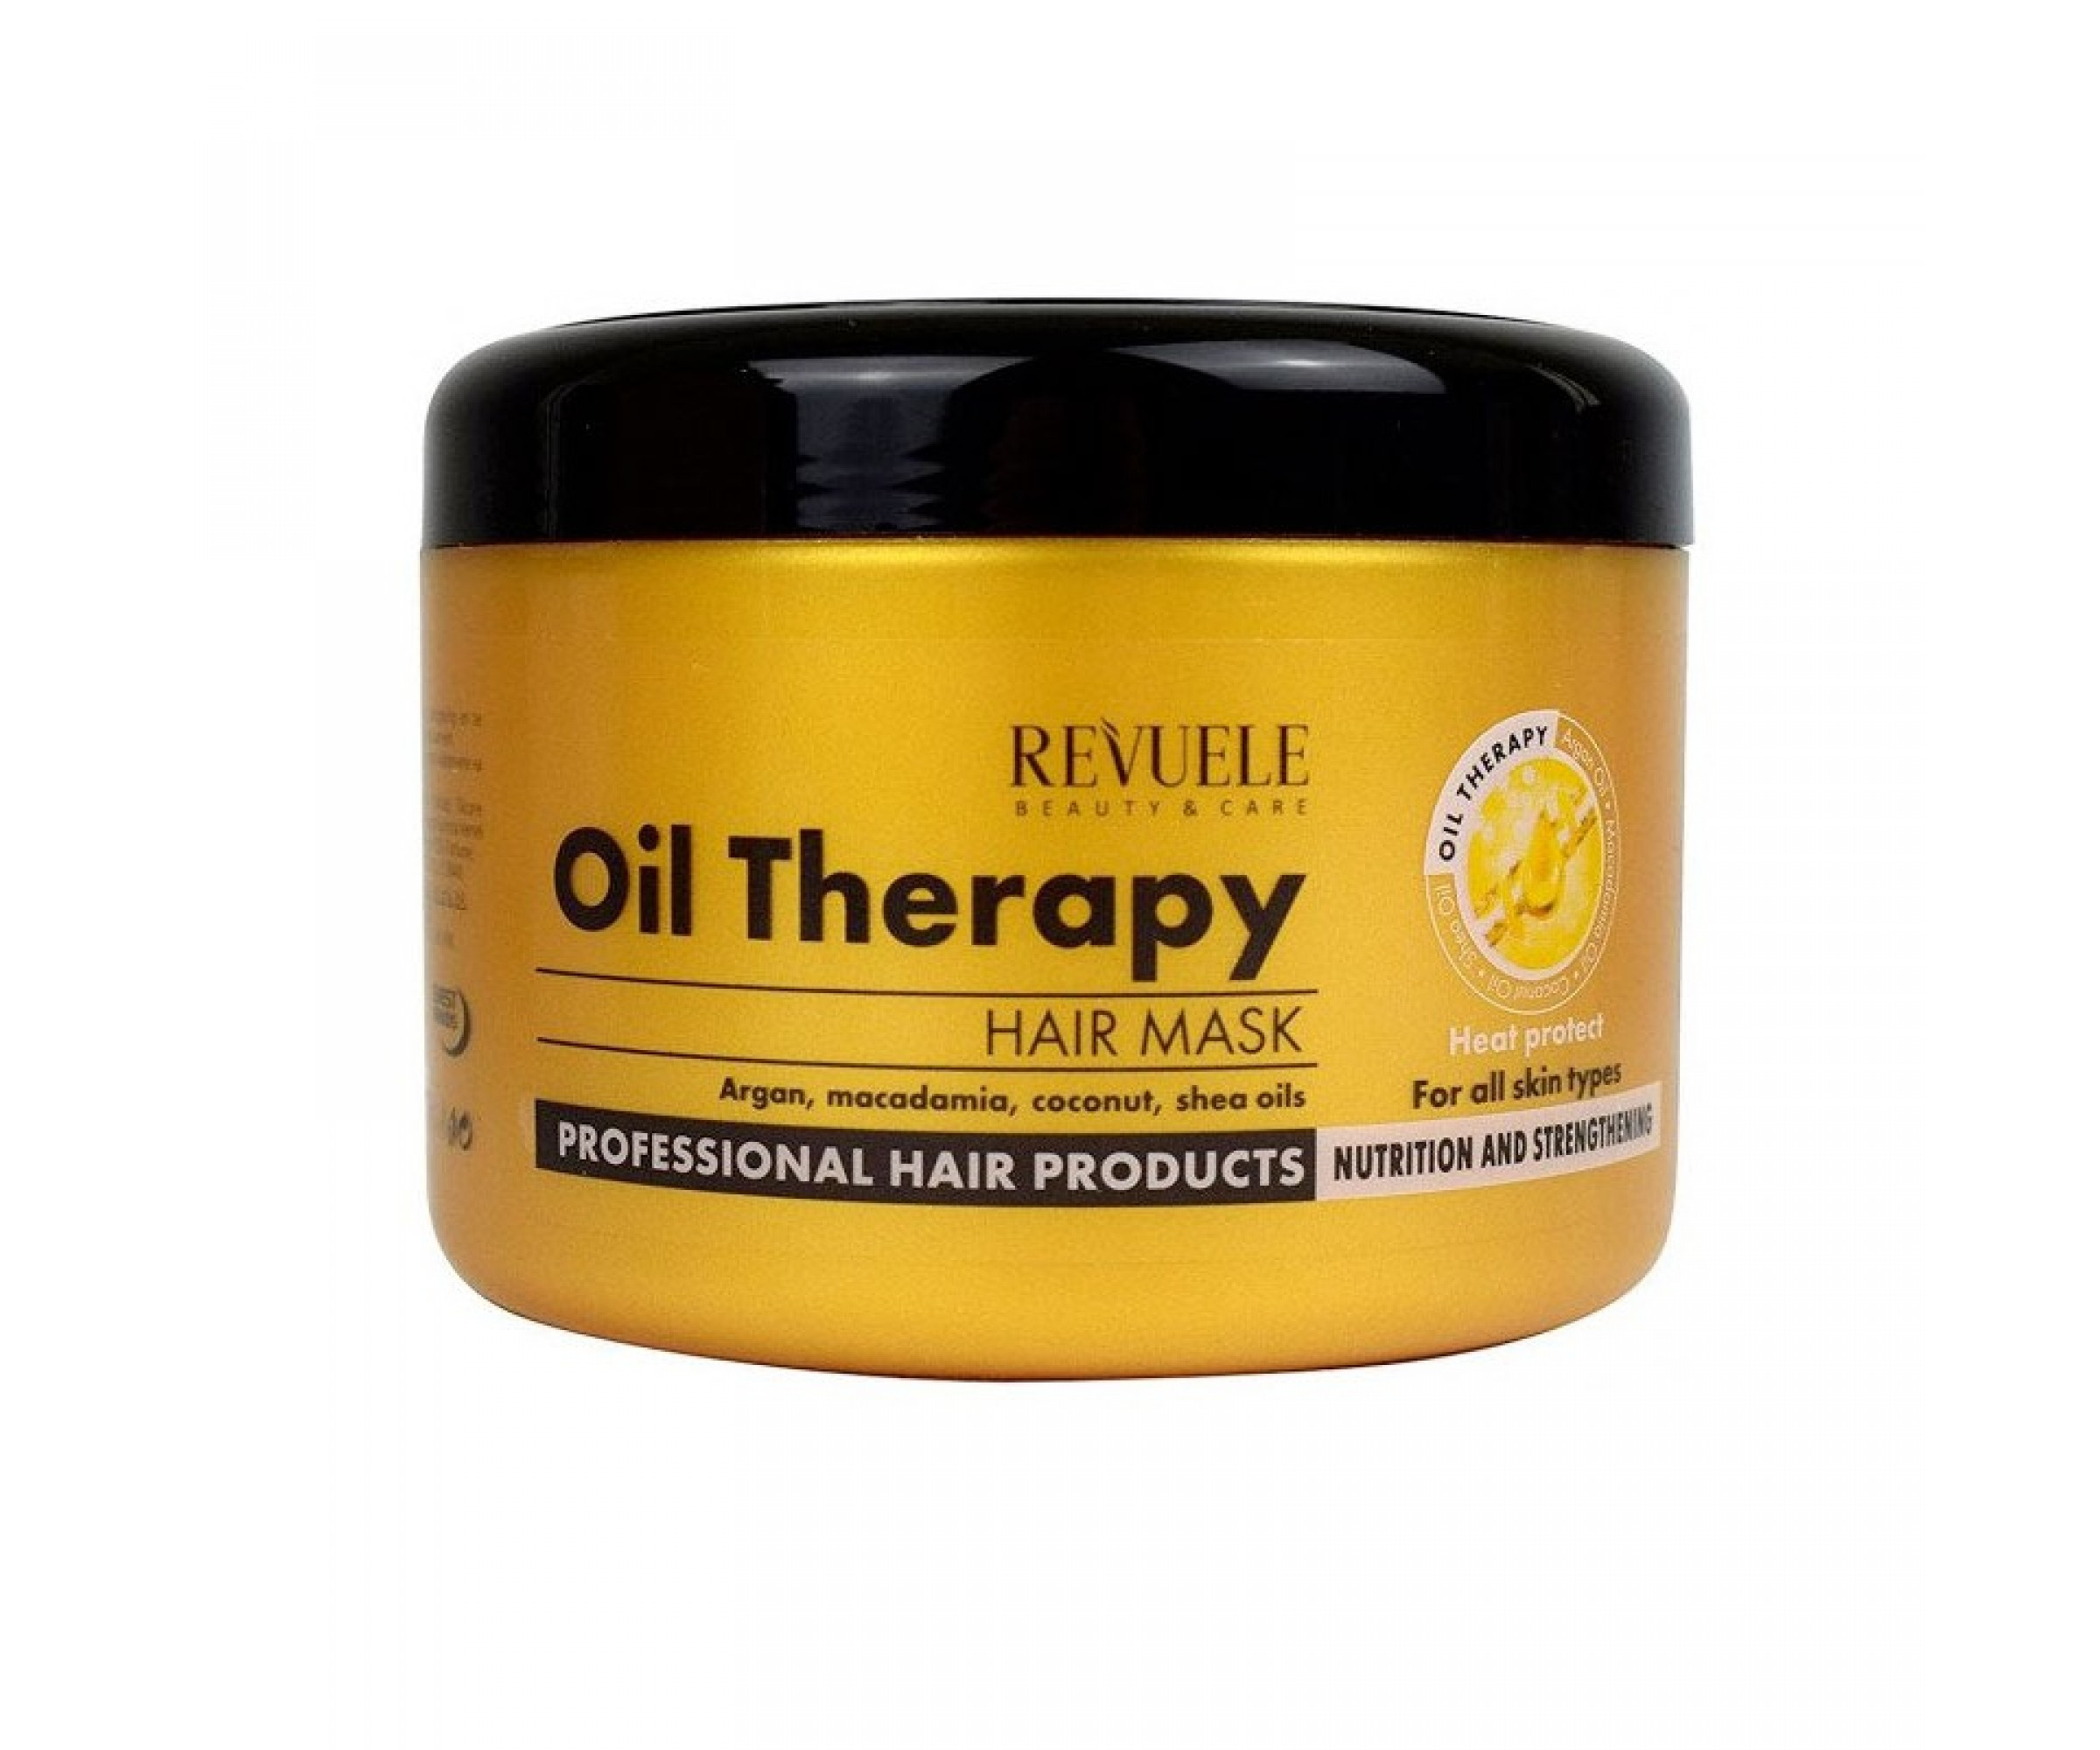 Revuele Hair Mask Oil Therapy With Argan Oil, Macadamia, Coconut And Shea Oils